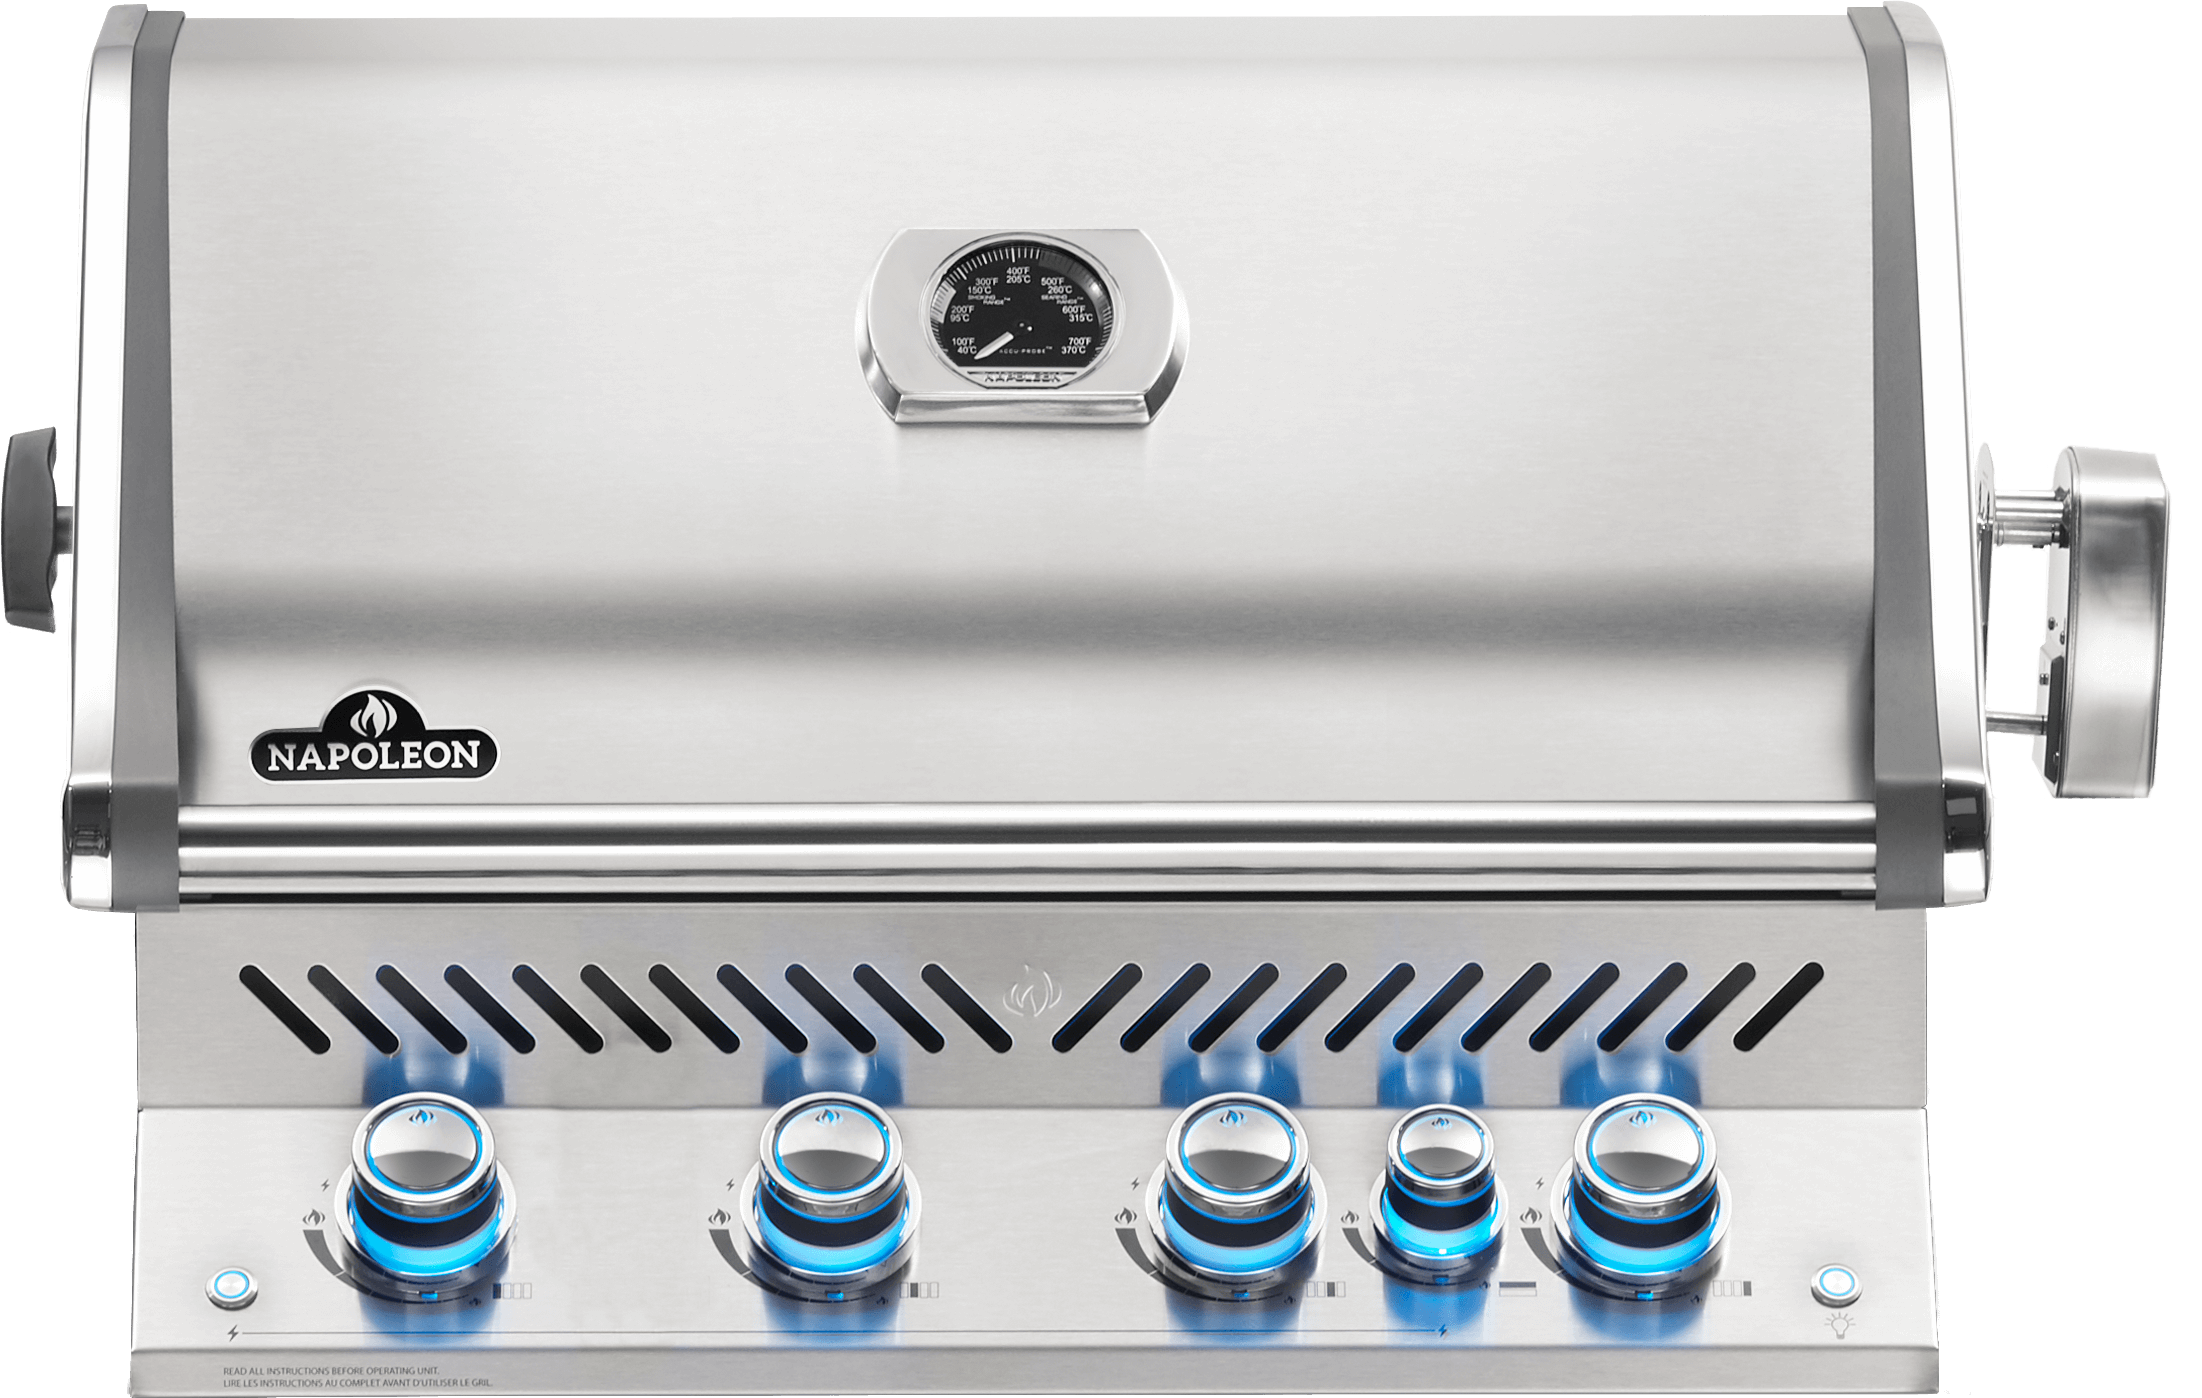 Built-in Prestige PRO™ 500 Natural Gas Grill Head with Infrared Rear Burner, Stainless Steel